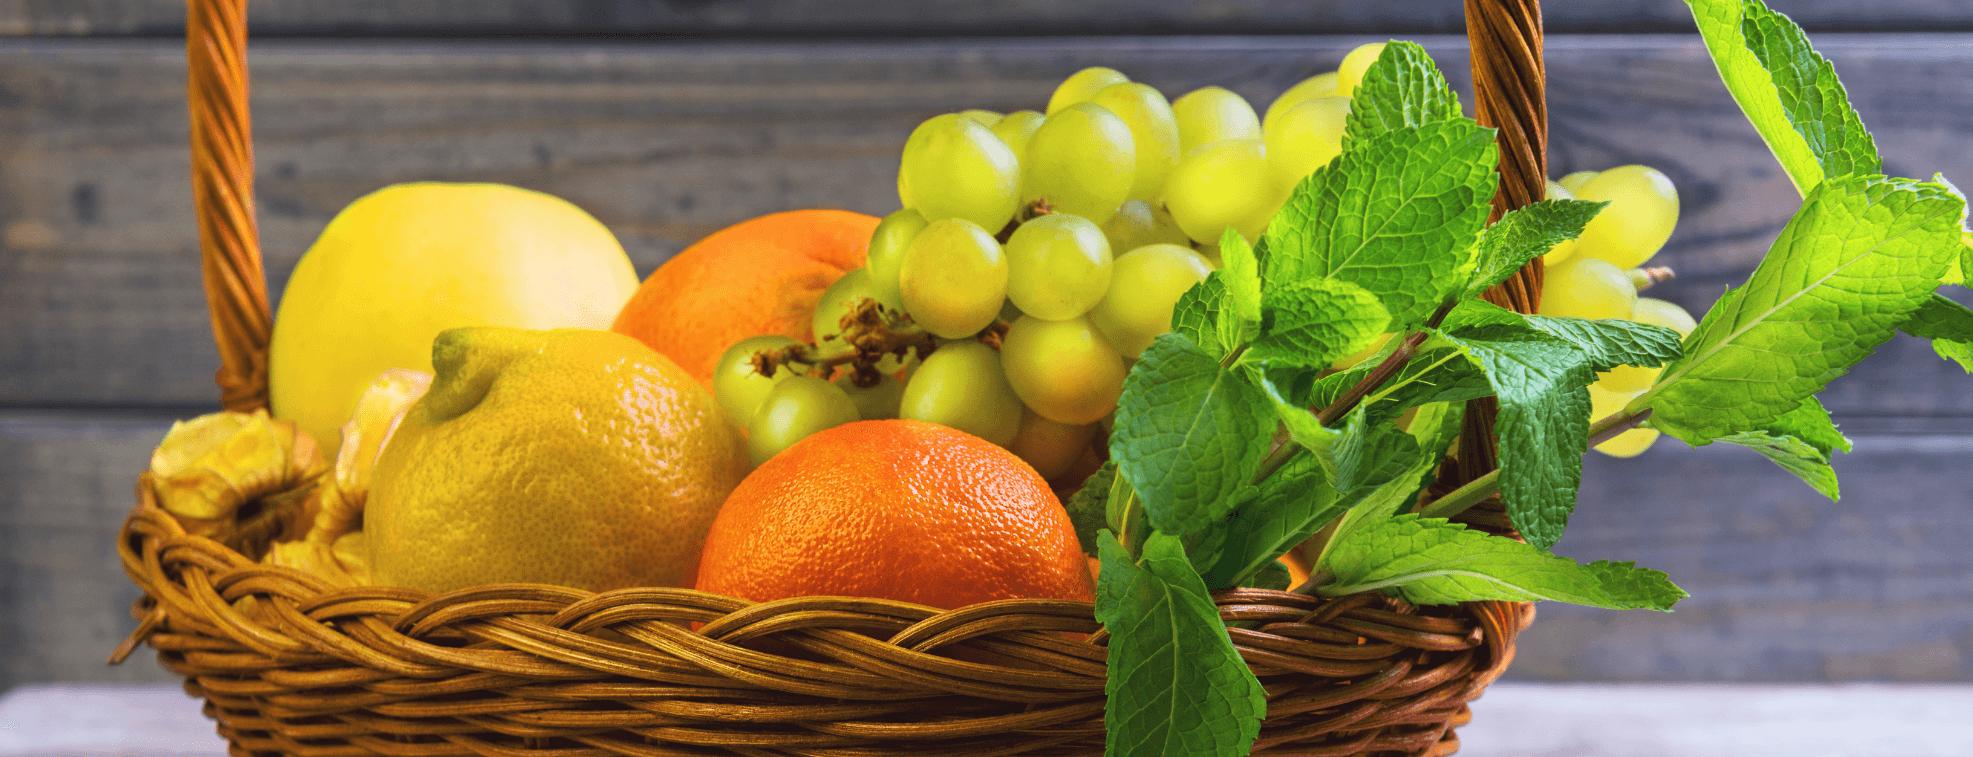 Apples, tangerines, grapes, lemons and other round fruits in a basket